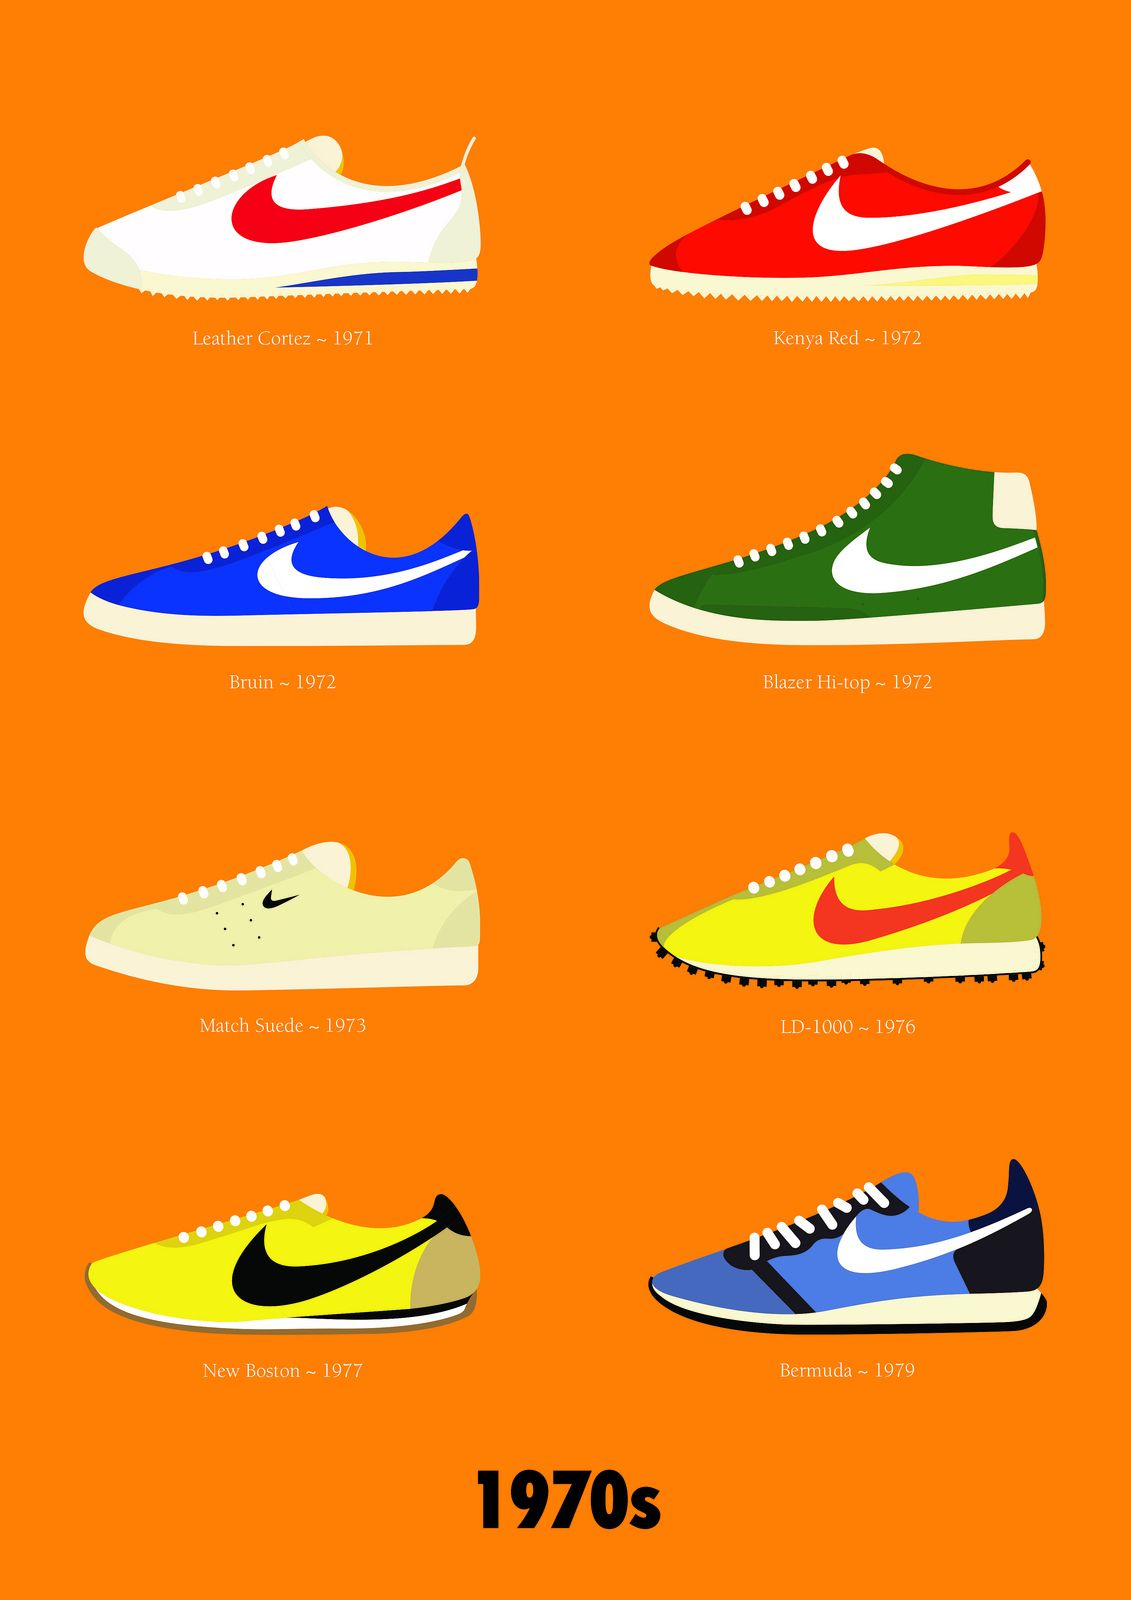 London based illustrator Stephen Cheetham has created a series of sneaker  illustrations focusing on his favourite Nike silhouettes from the to the